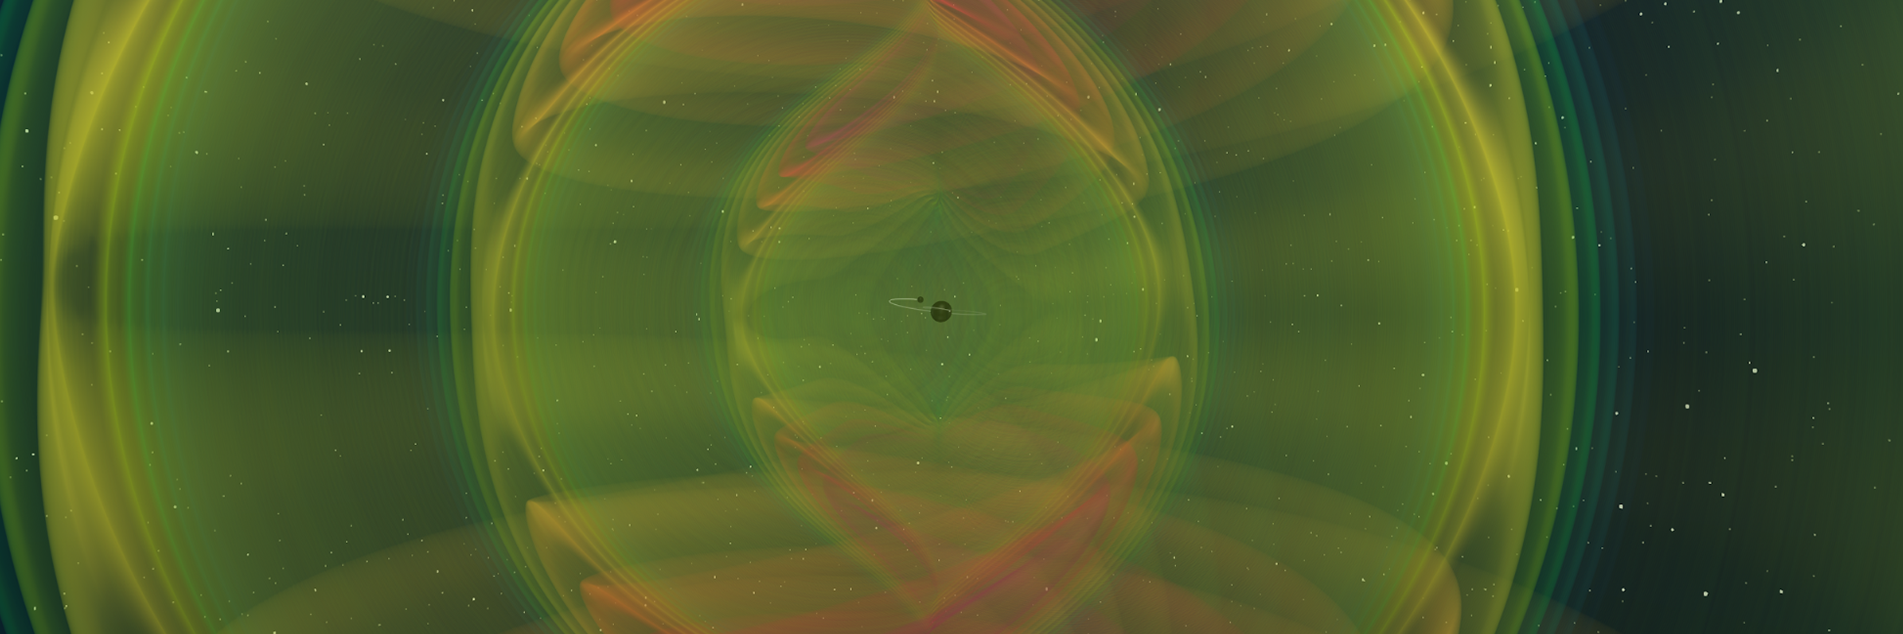 A still frame from a numerical simulation of a black hole system similar to GW190412. Image credit: N.L. Fischer, H. Pfeiffer, MPI, SXS.